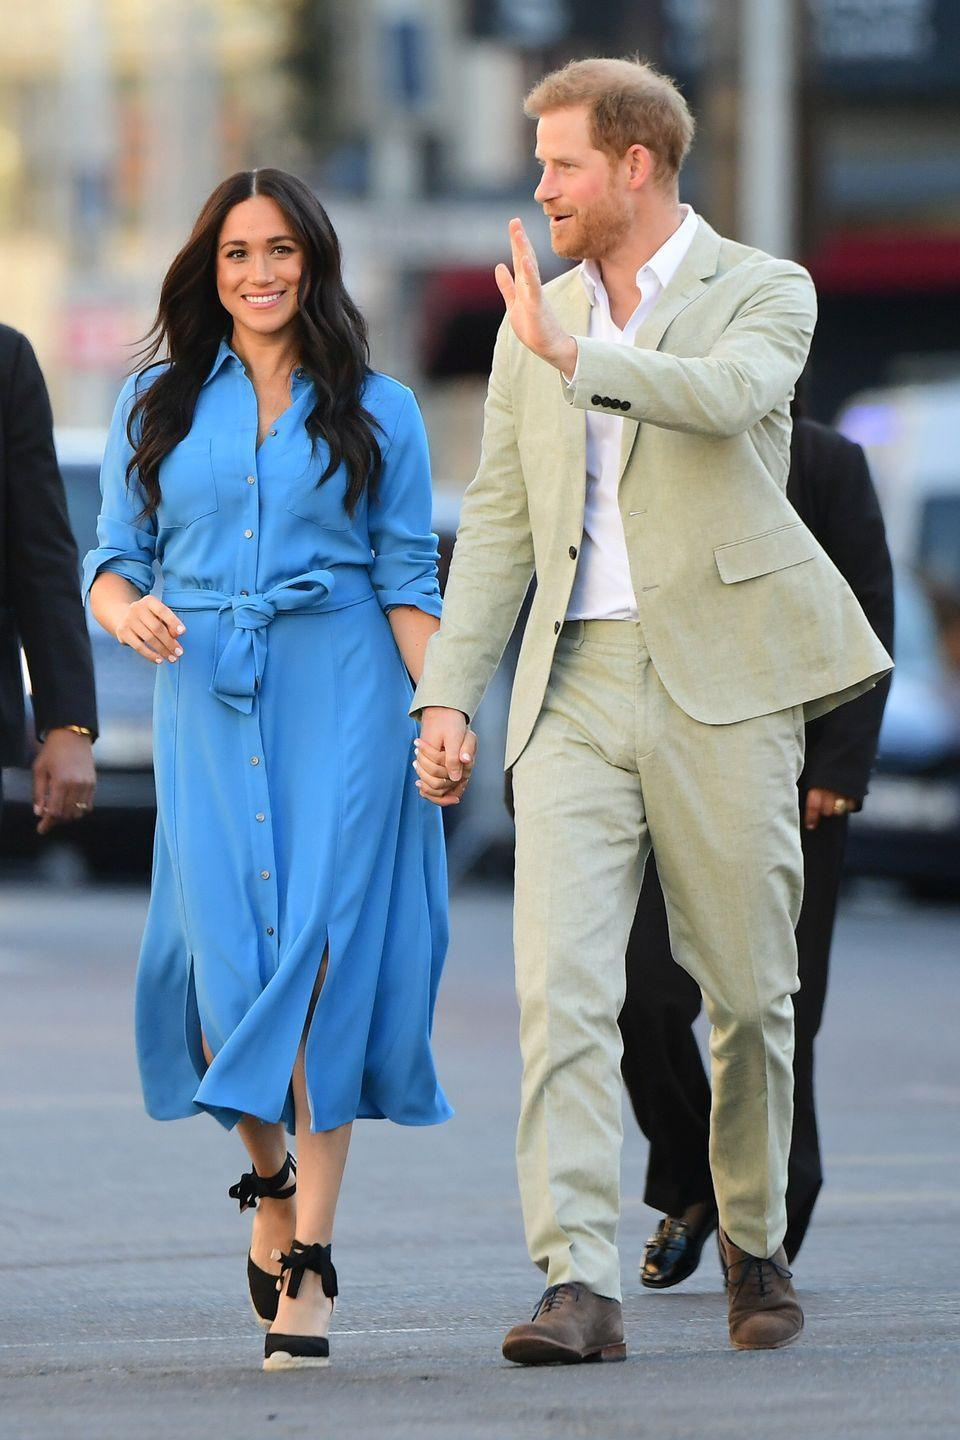 <p>Harry and Meghan made their debut as a royal family on their South African tour, and they made it clear they wanted to shake up their image. Meghan and Harry asked fans to skip the HRH and simply refer to them as, well, Meghan and Harry. This was a move that completely dodged royal protocol. </p>